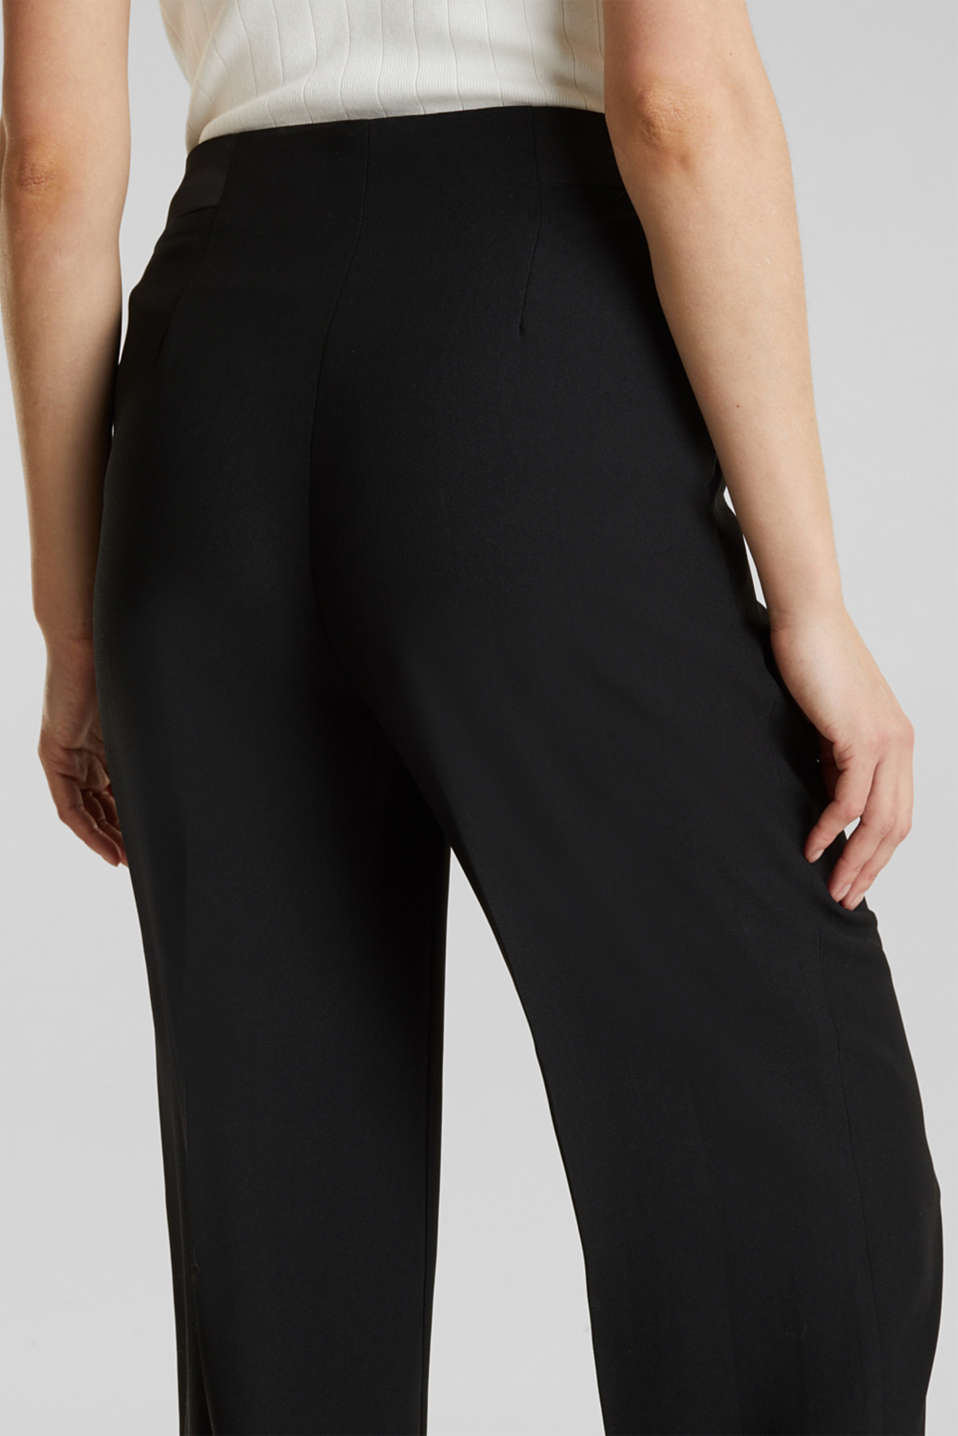 MATT SHINE mix + match culottes, BLACK, detail image number 5